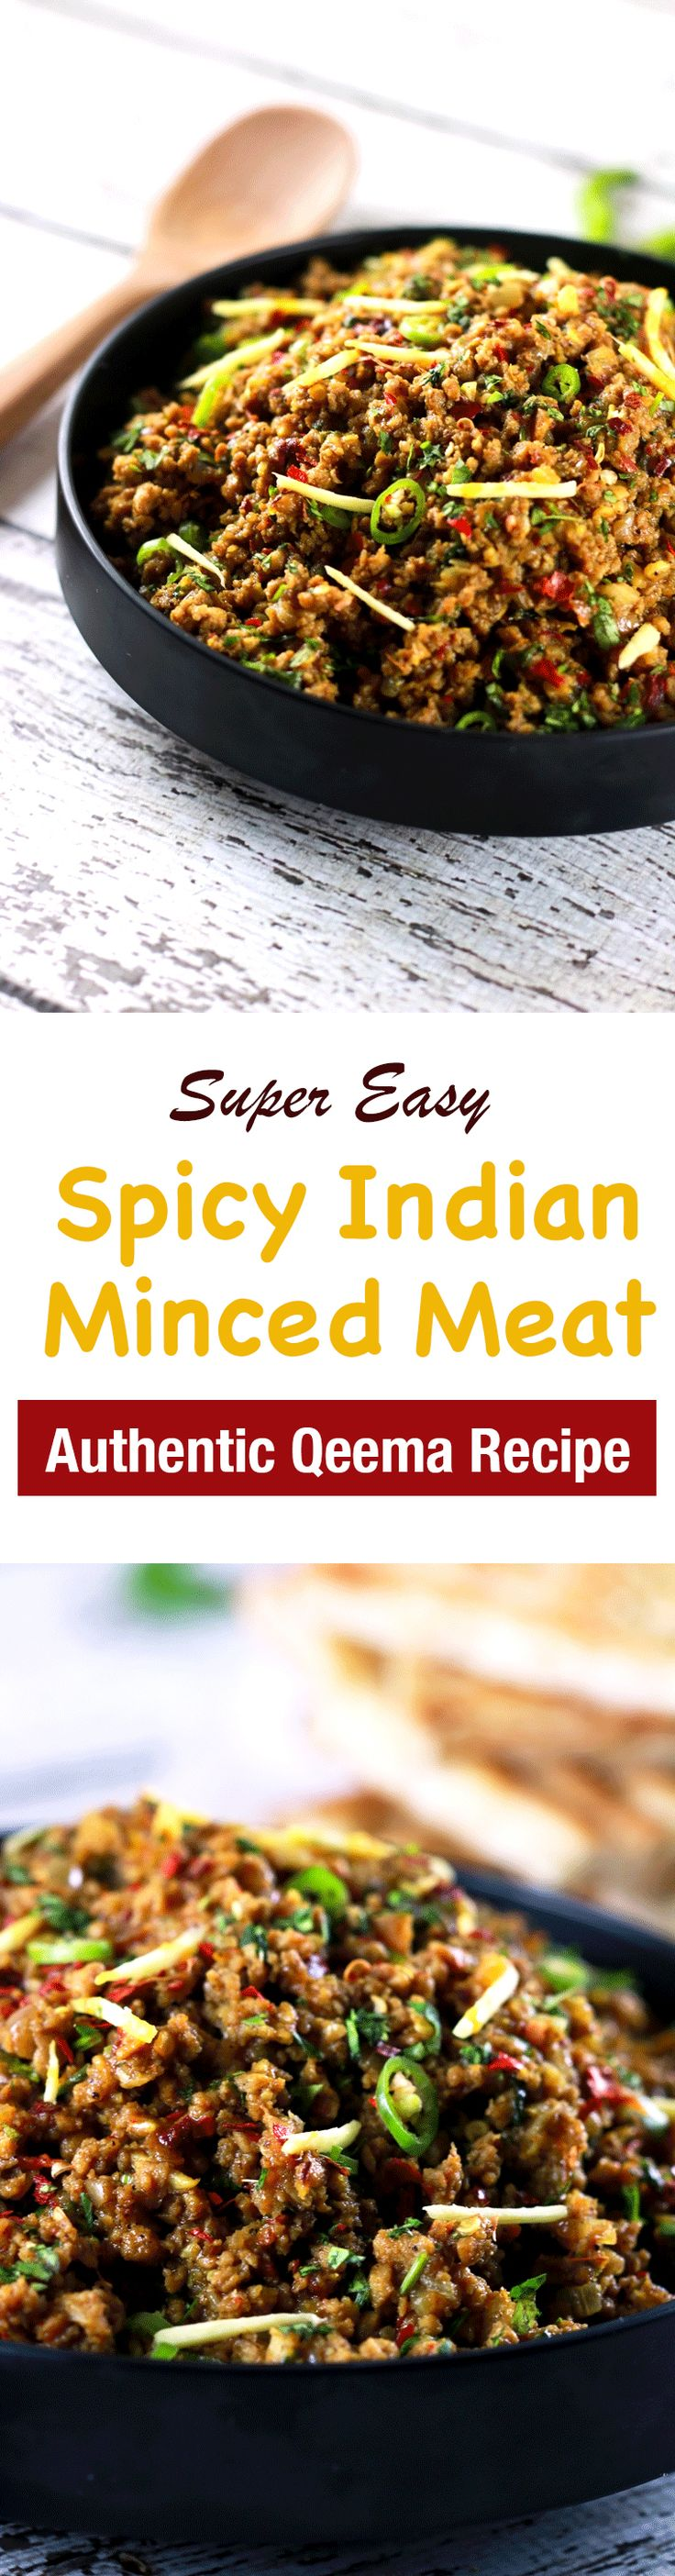 This CLASSIC authentic Indian minced meat Qeema recipe is so delicious, it'll become a regular at your house!! | ScrambledChefs.com